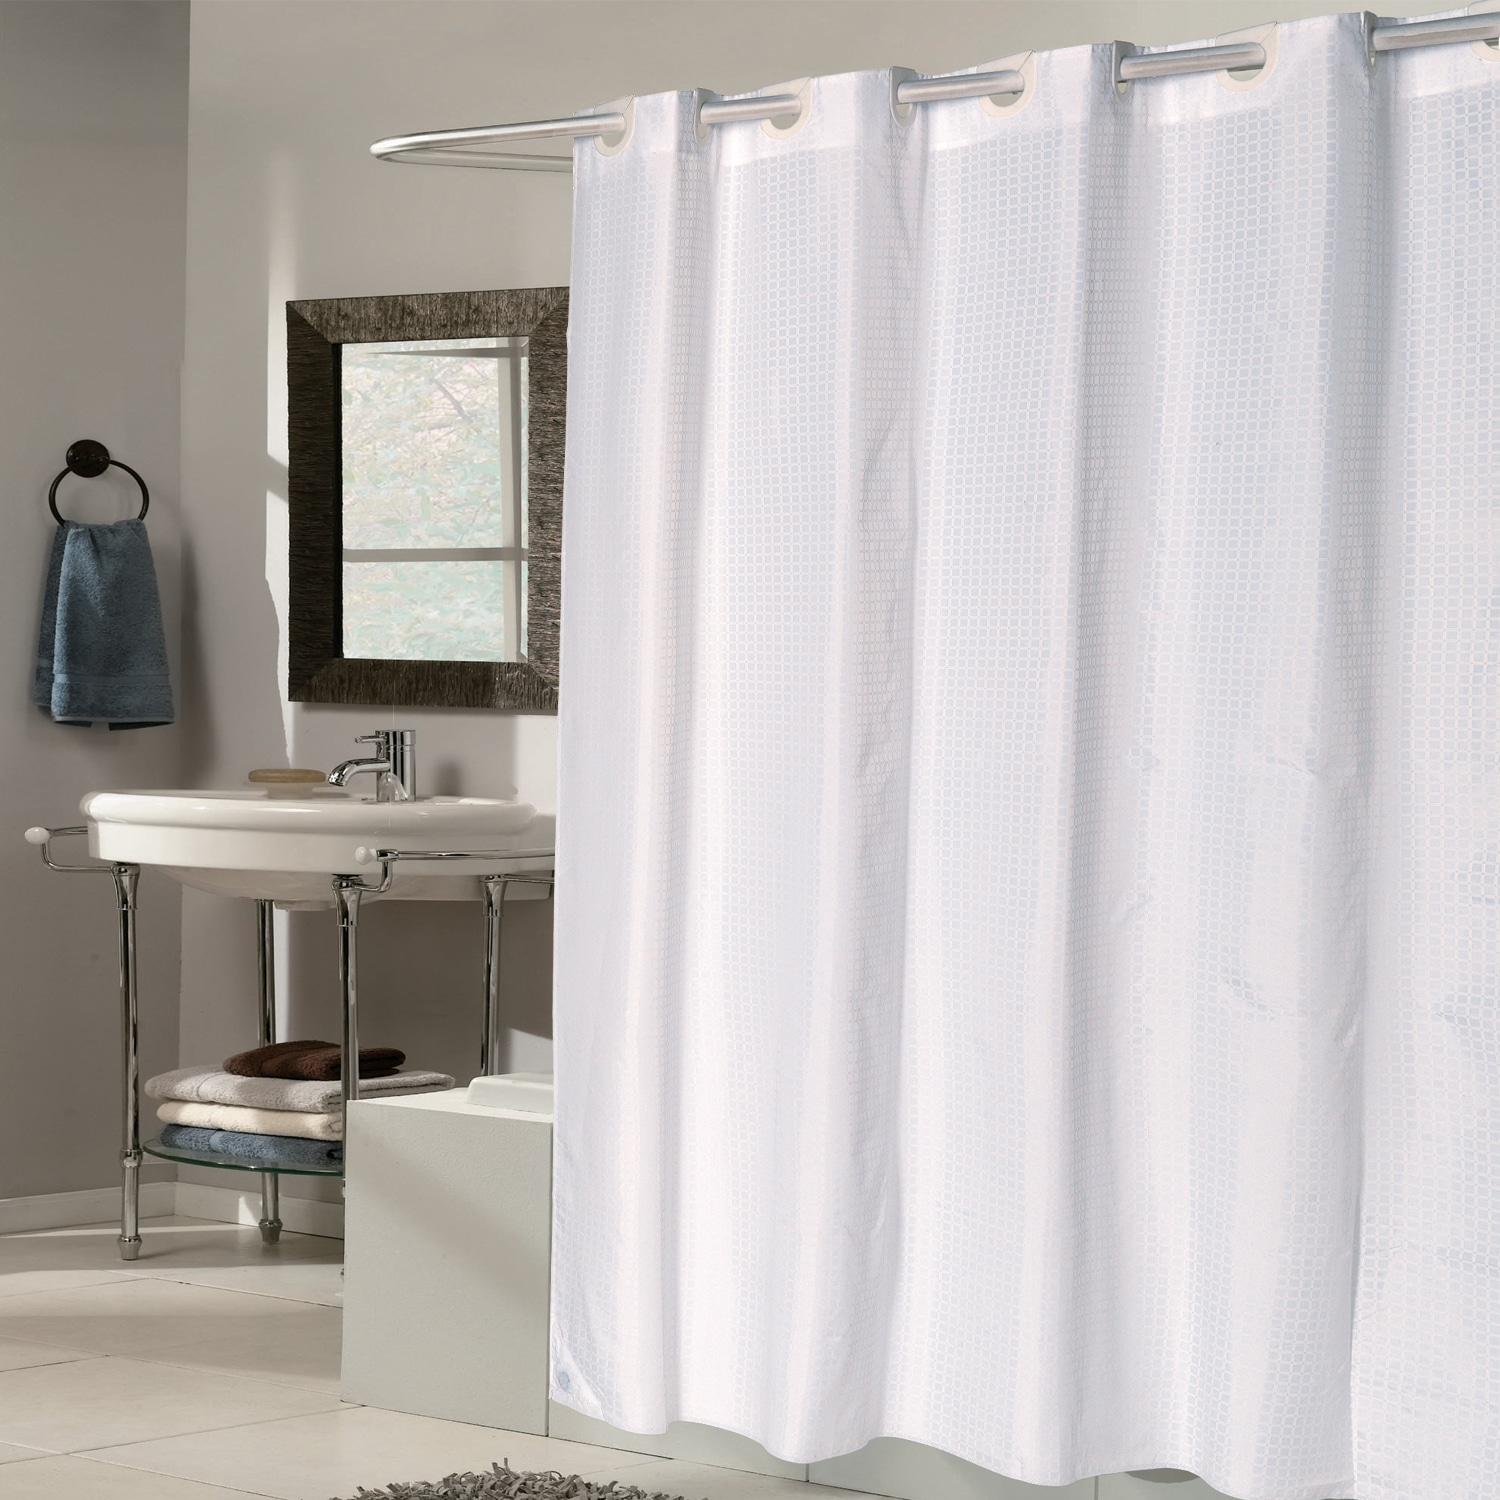 org peva curtains ikea shower liner s reviews liners boatylicious curtain target